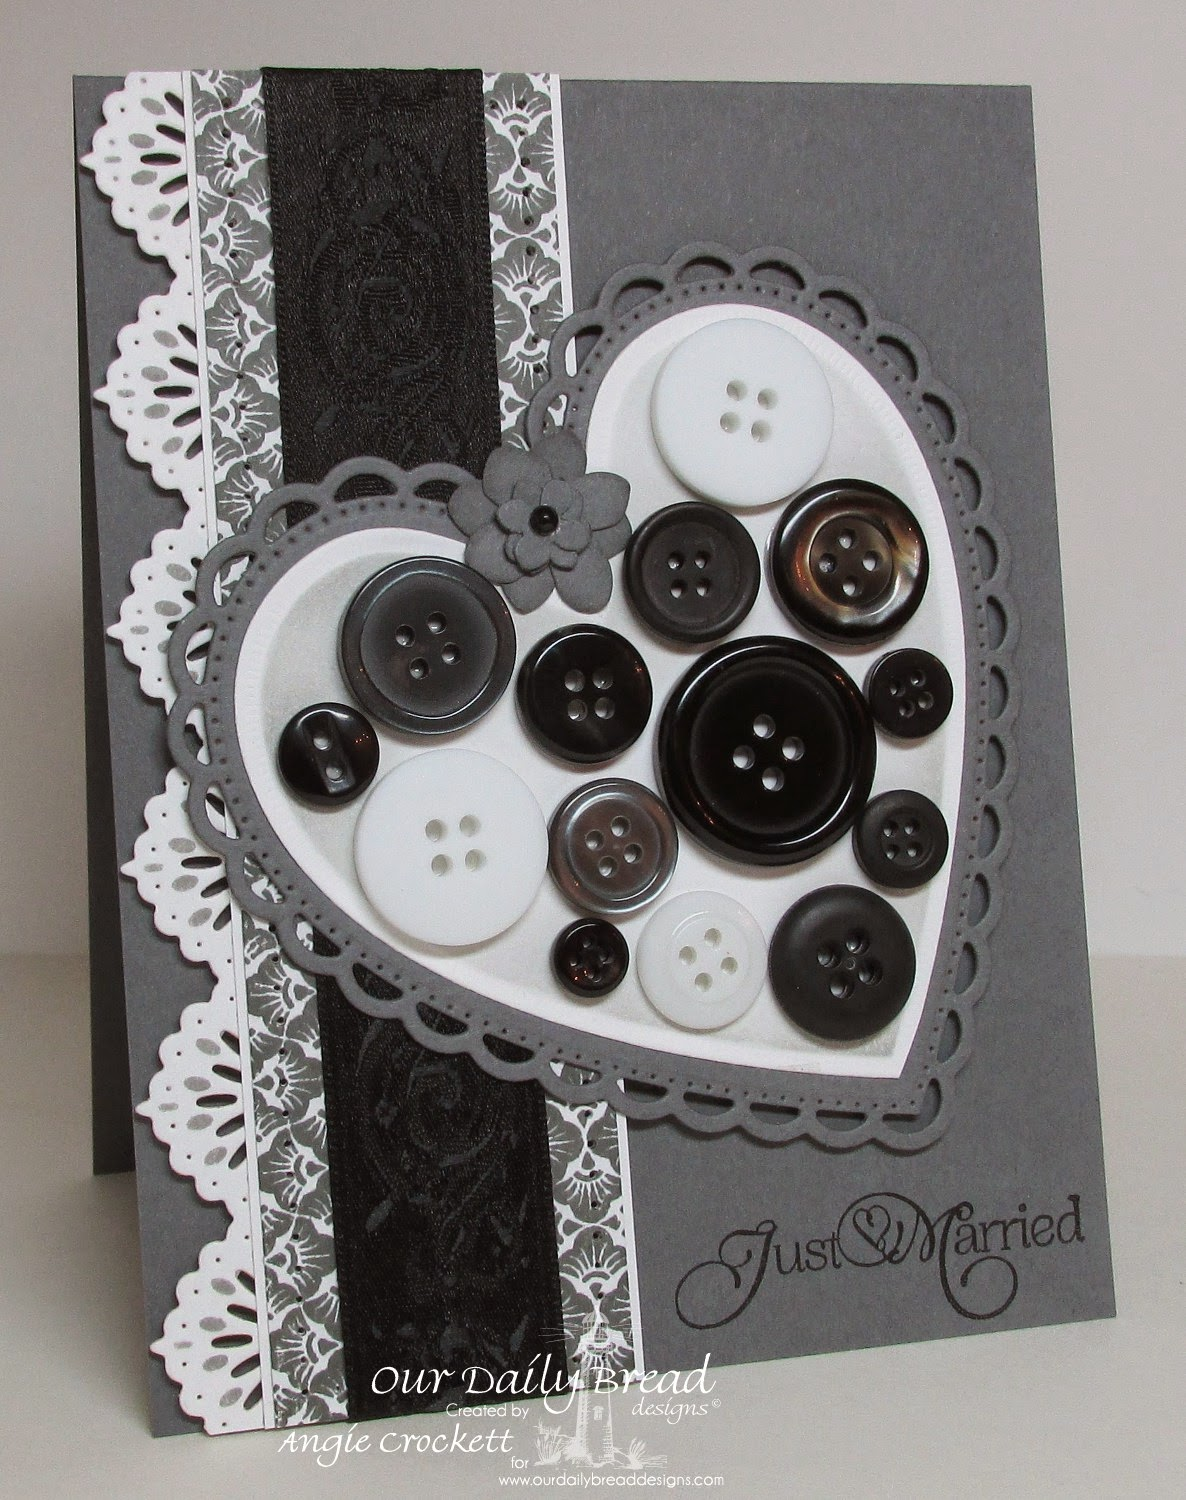 ODBD Ornate Hearts Dies, ODBD Beautiful Borders Dies, Wedding Blessings, Chalkboard Fan Background, Card Designer Angie Crockett